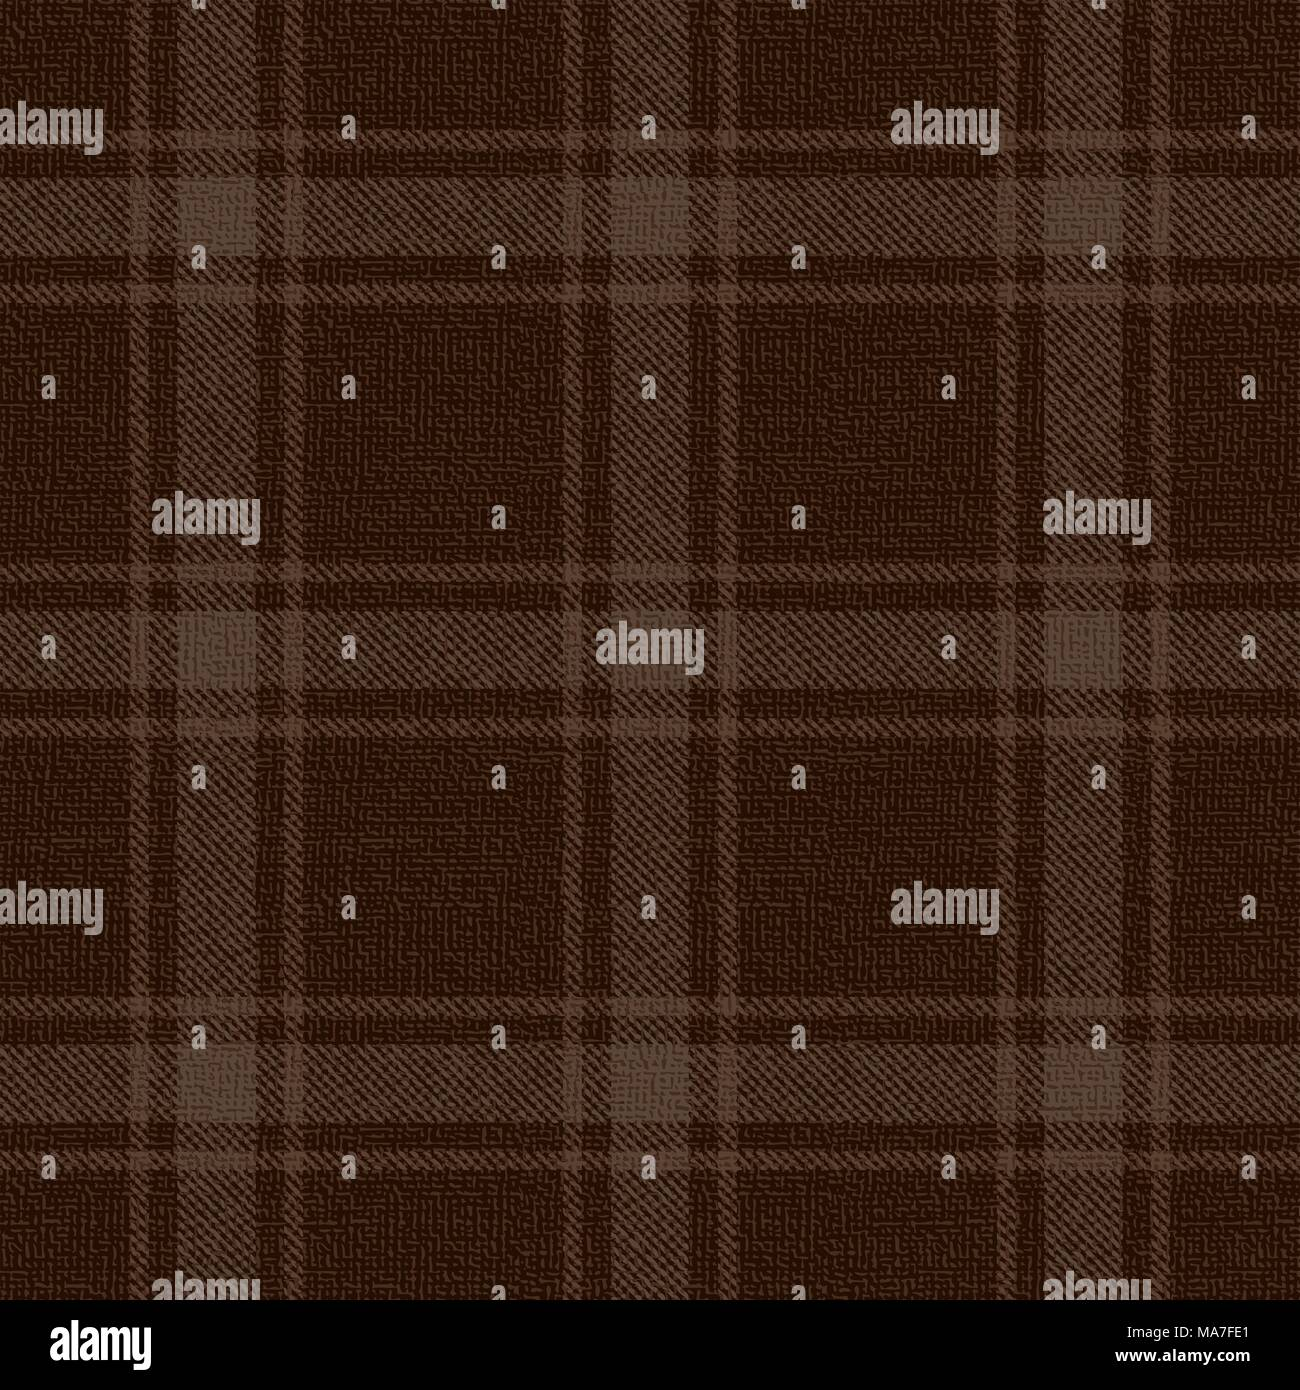 Brown plaid vector pattern background. - Stock Vector